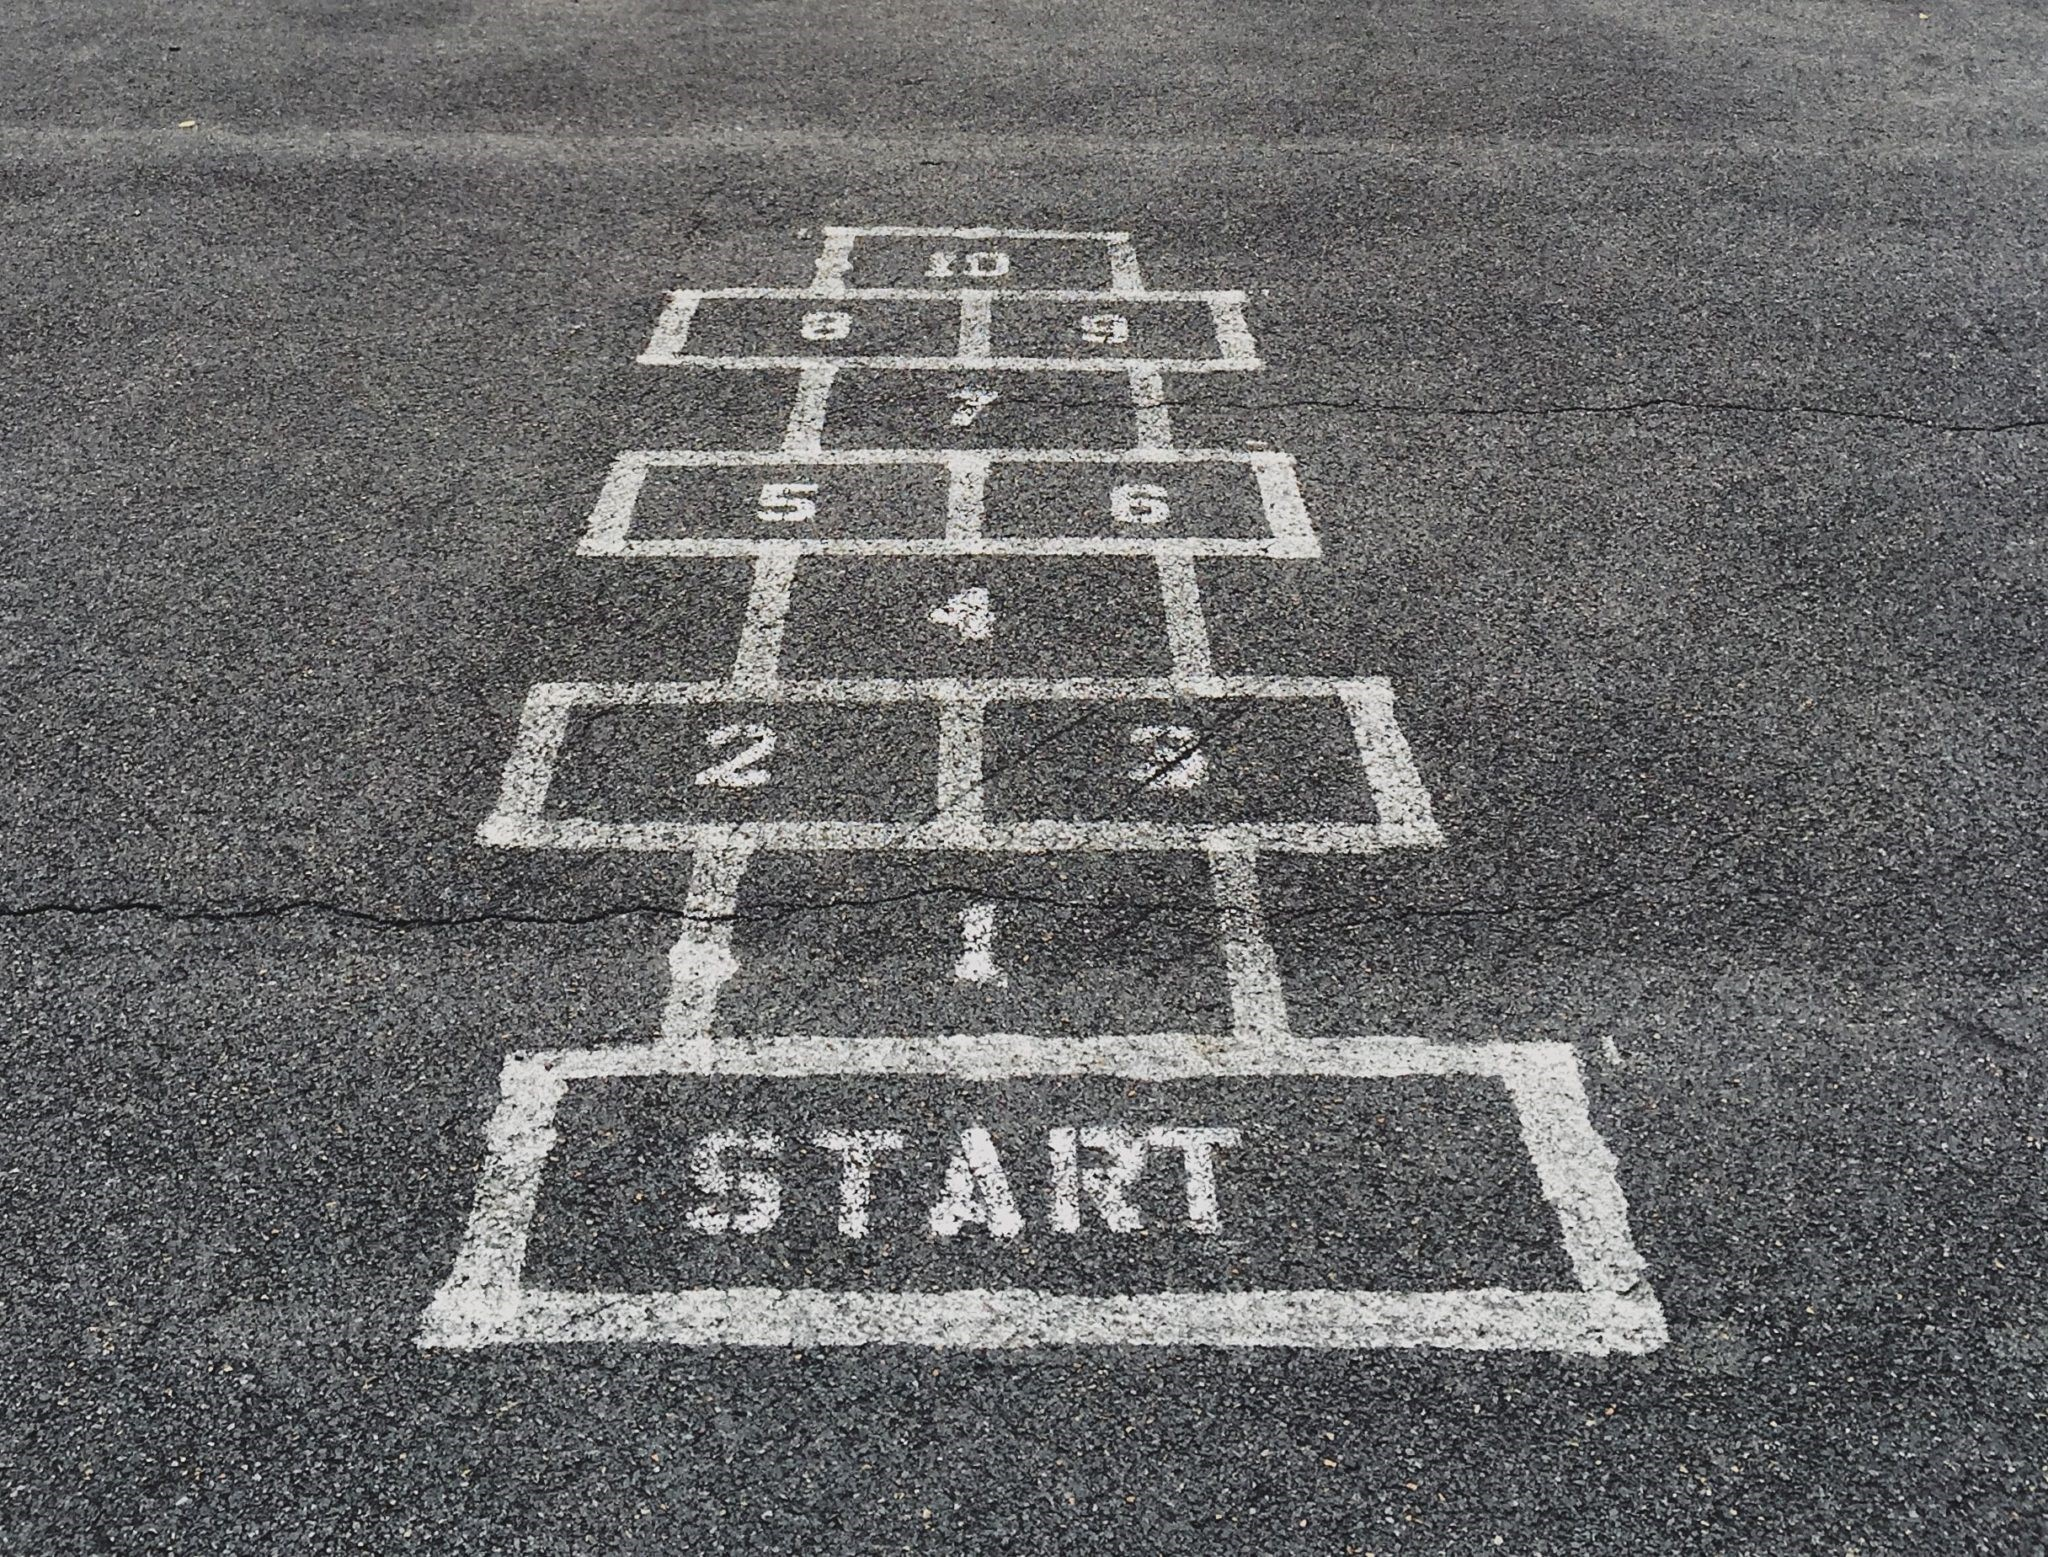 Image Of Game Of Hop Scotch